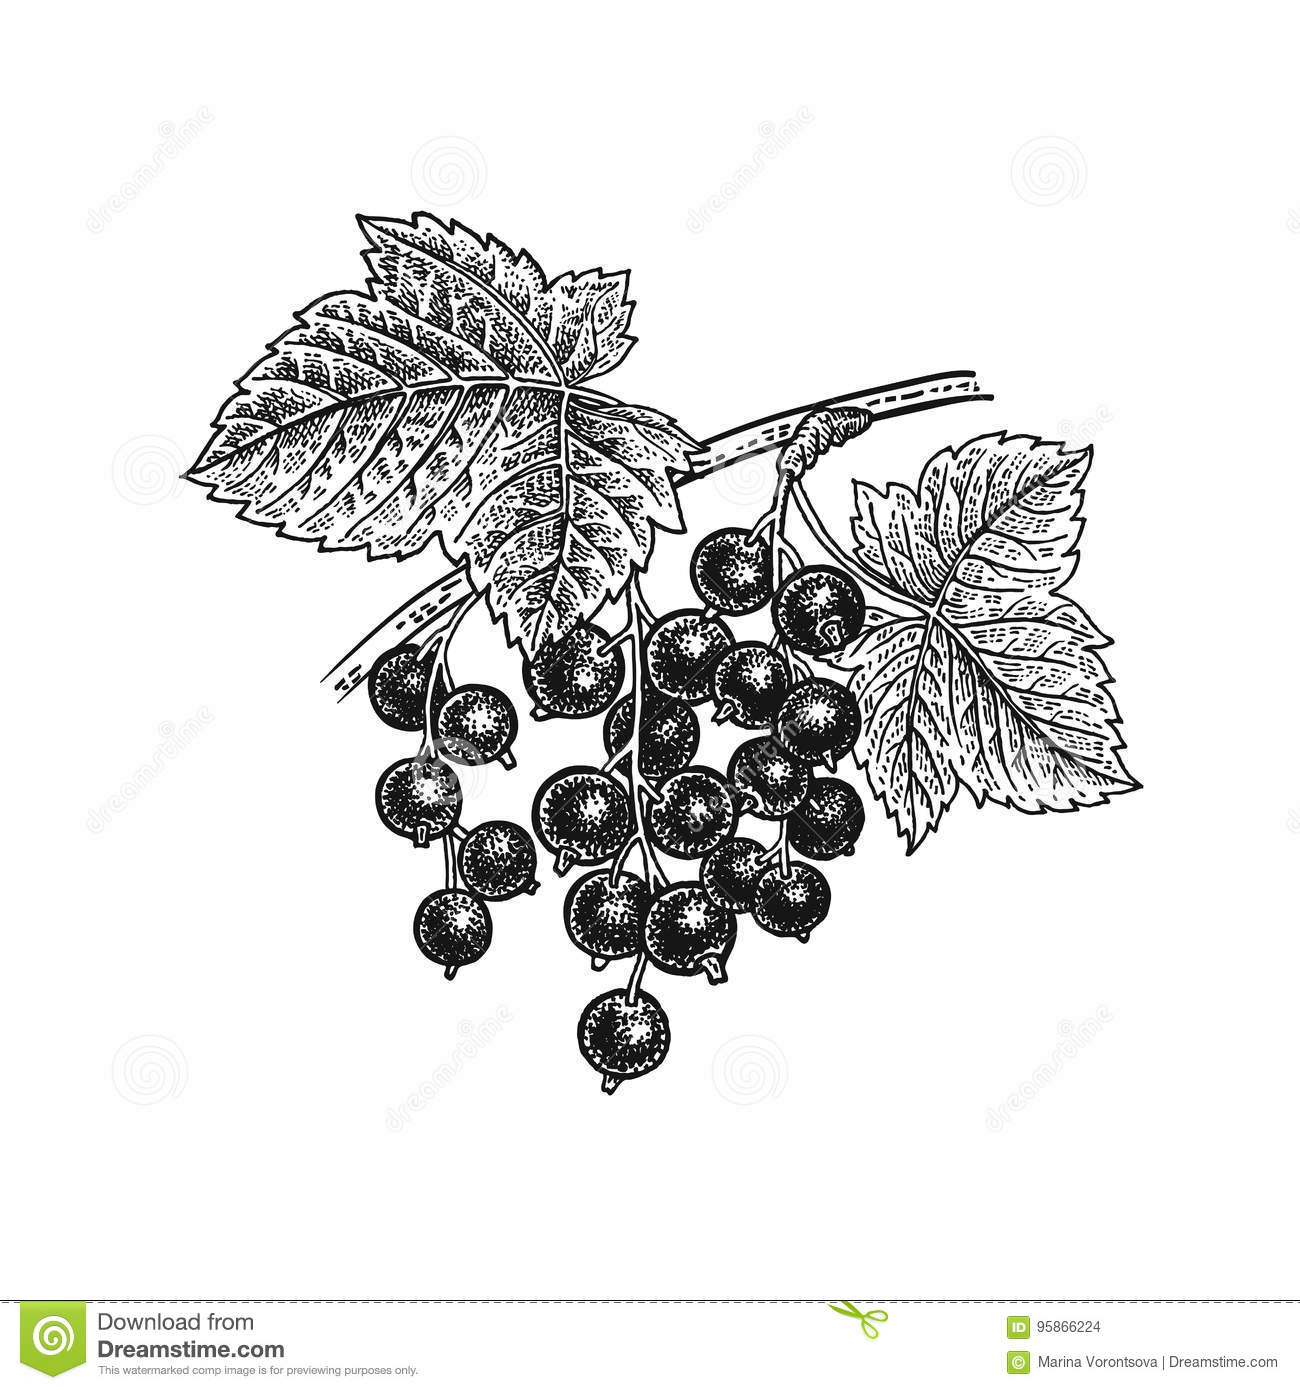 Black currant. Realistic hand drawing.